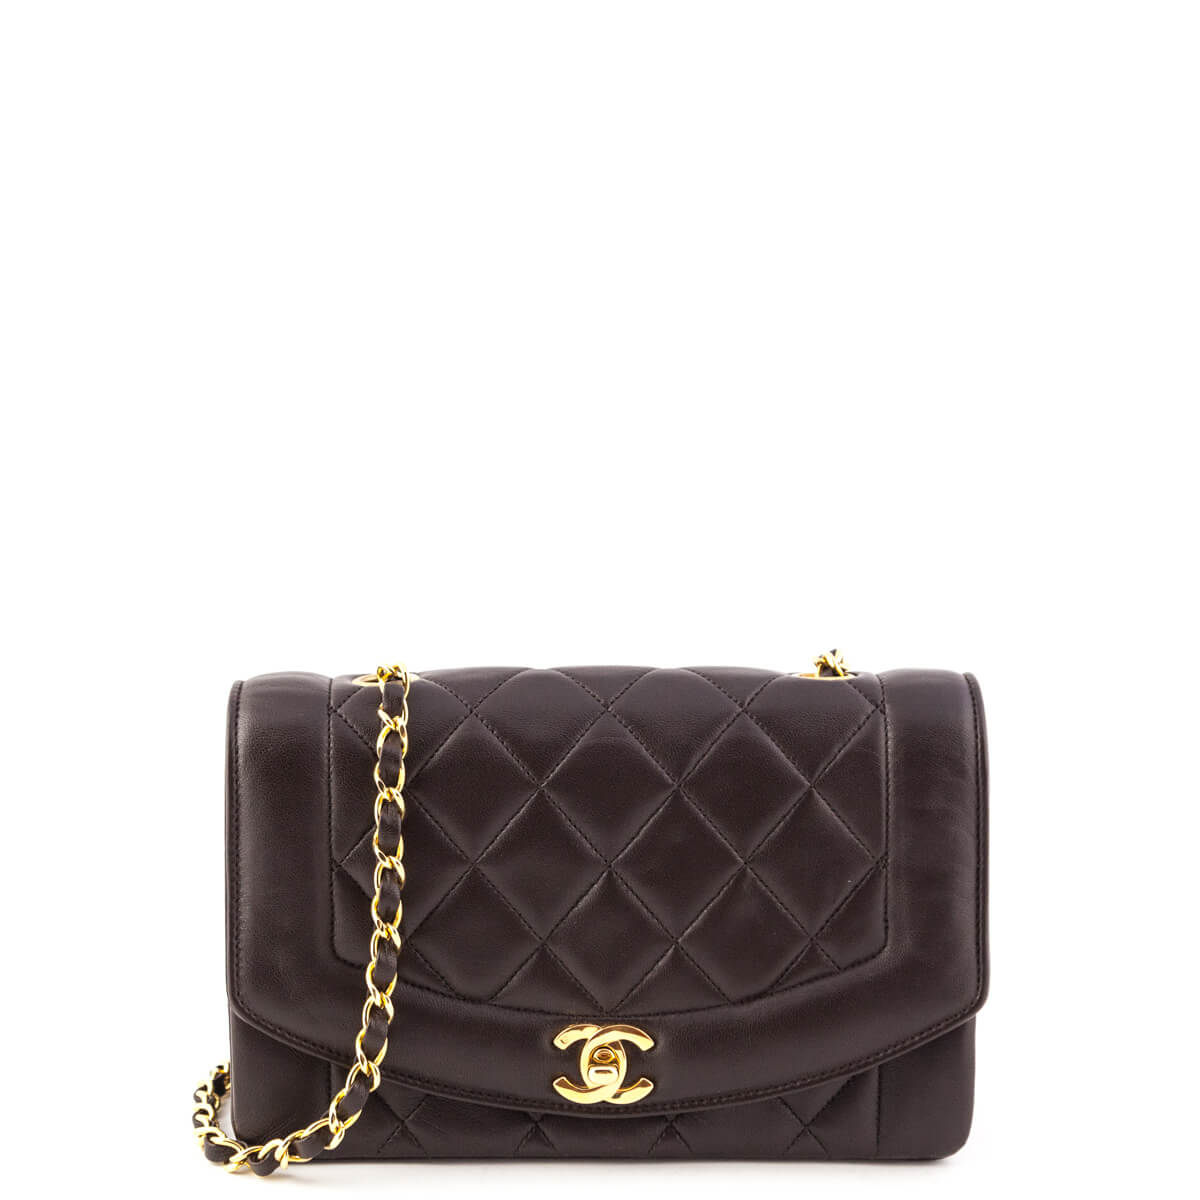 d01b76dbb980 Chanel Dark Brown Lambskin Vintage Single Flap Bag GHW - LOVE that BAG -  Preowned Authentic ...